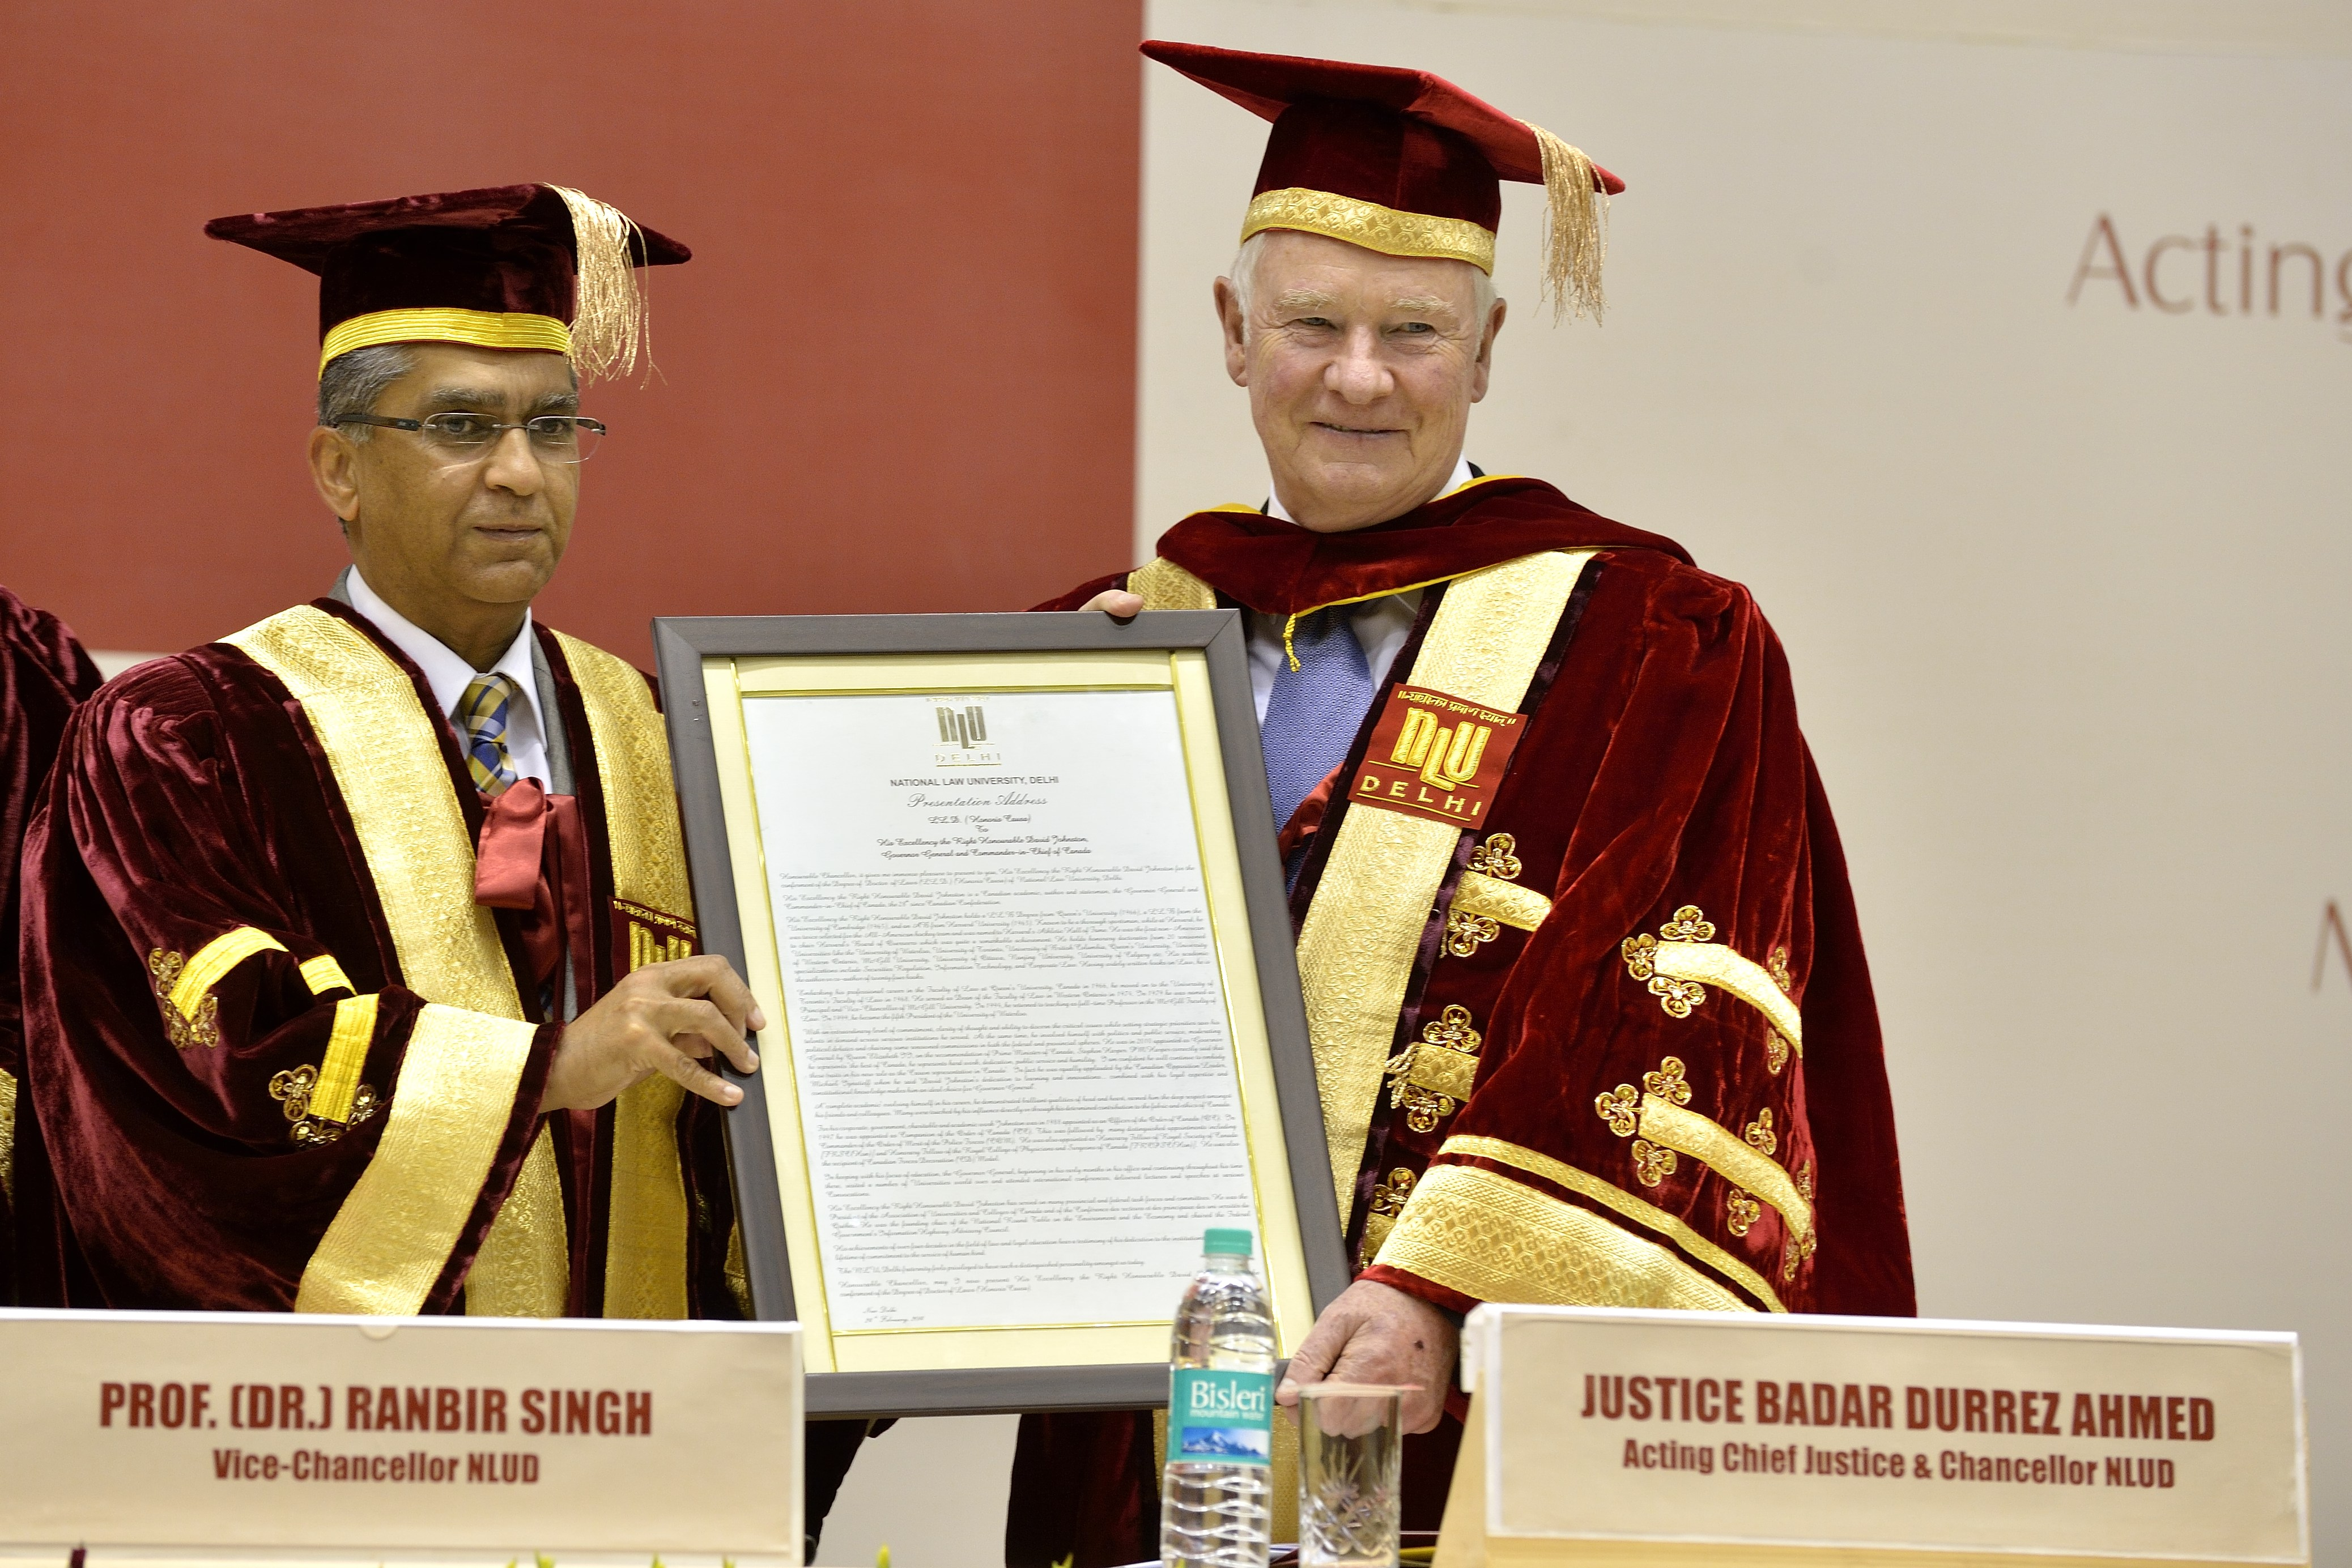 During a convocation ceremony at the National Law University, the Governor General was conferred with an honorary degree.